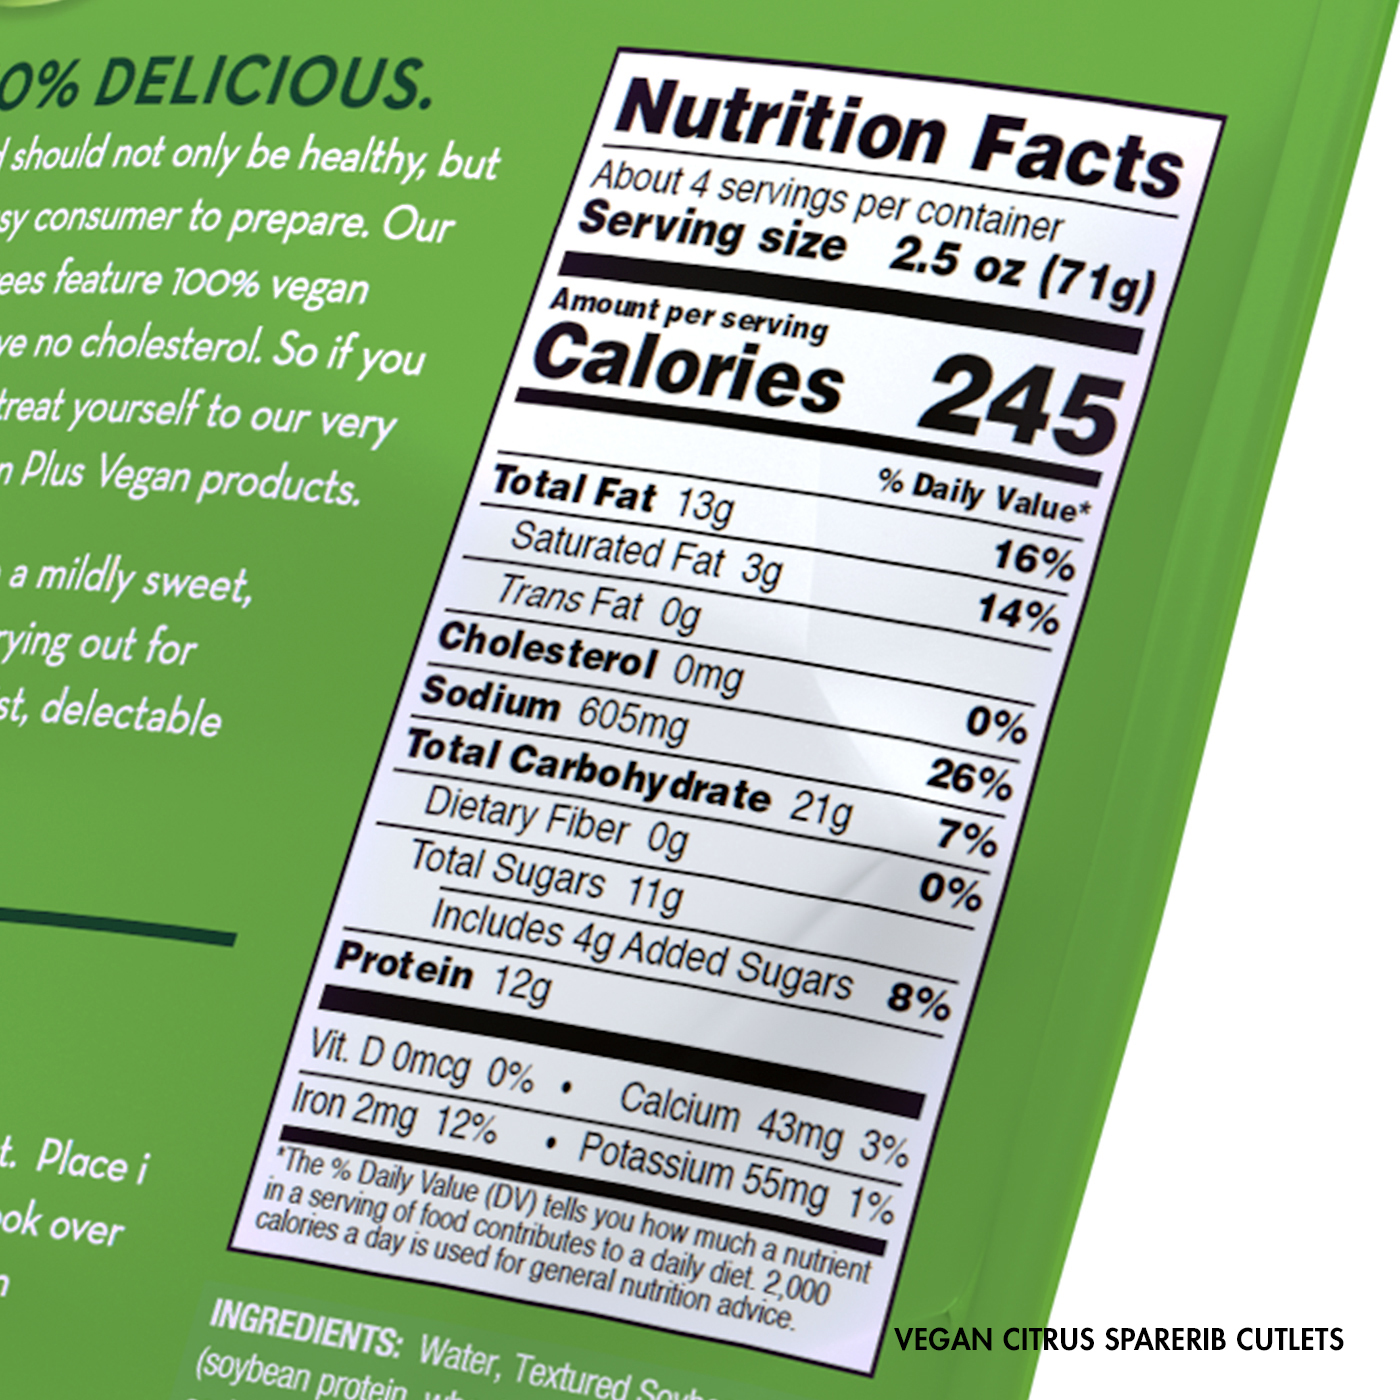 Vegan Citrus Sparerib Cutlets Nutrition Facts